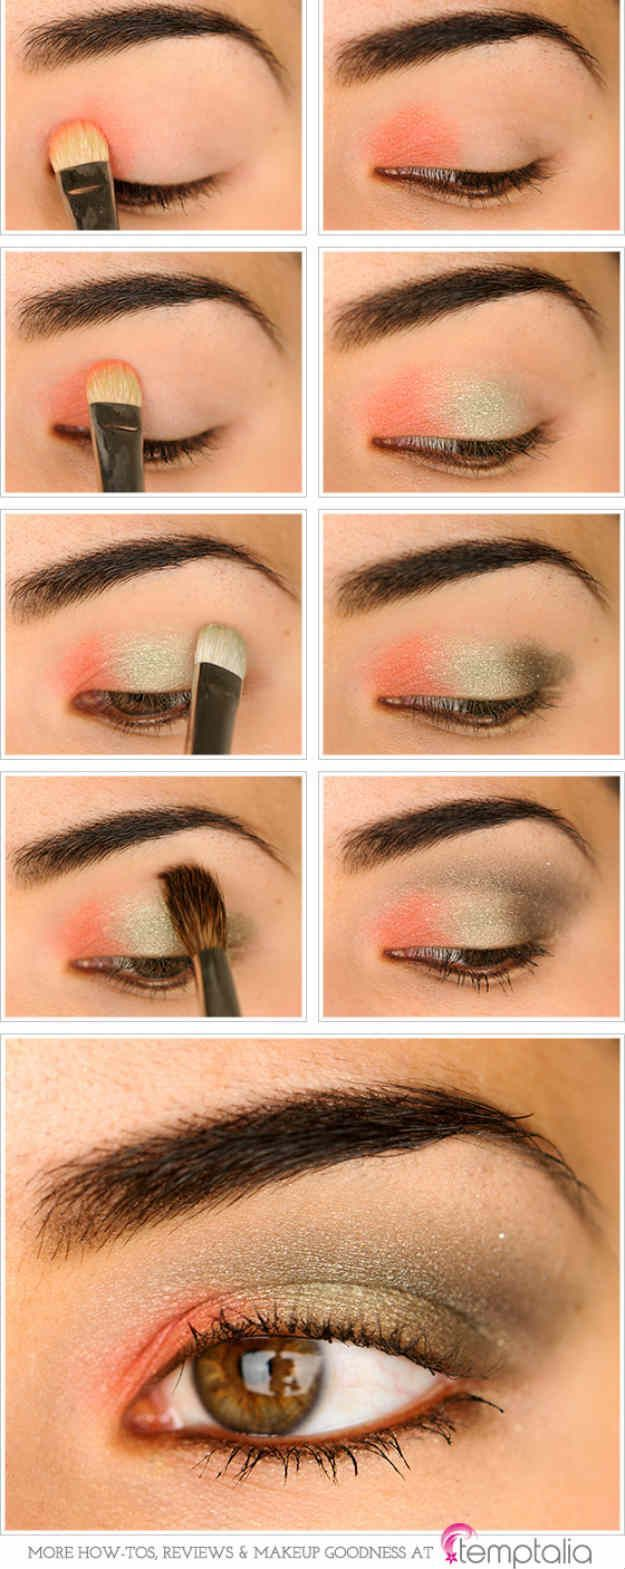 Coral and Olive Eyes | Eyeshadow For Brown Eyes | Makeup Tutorials Guide...